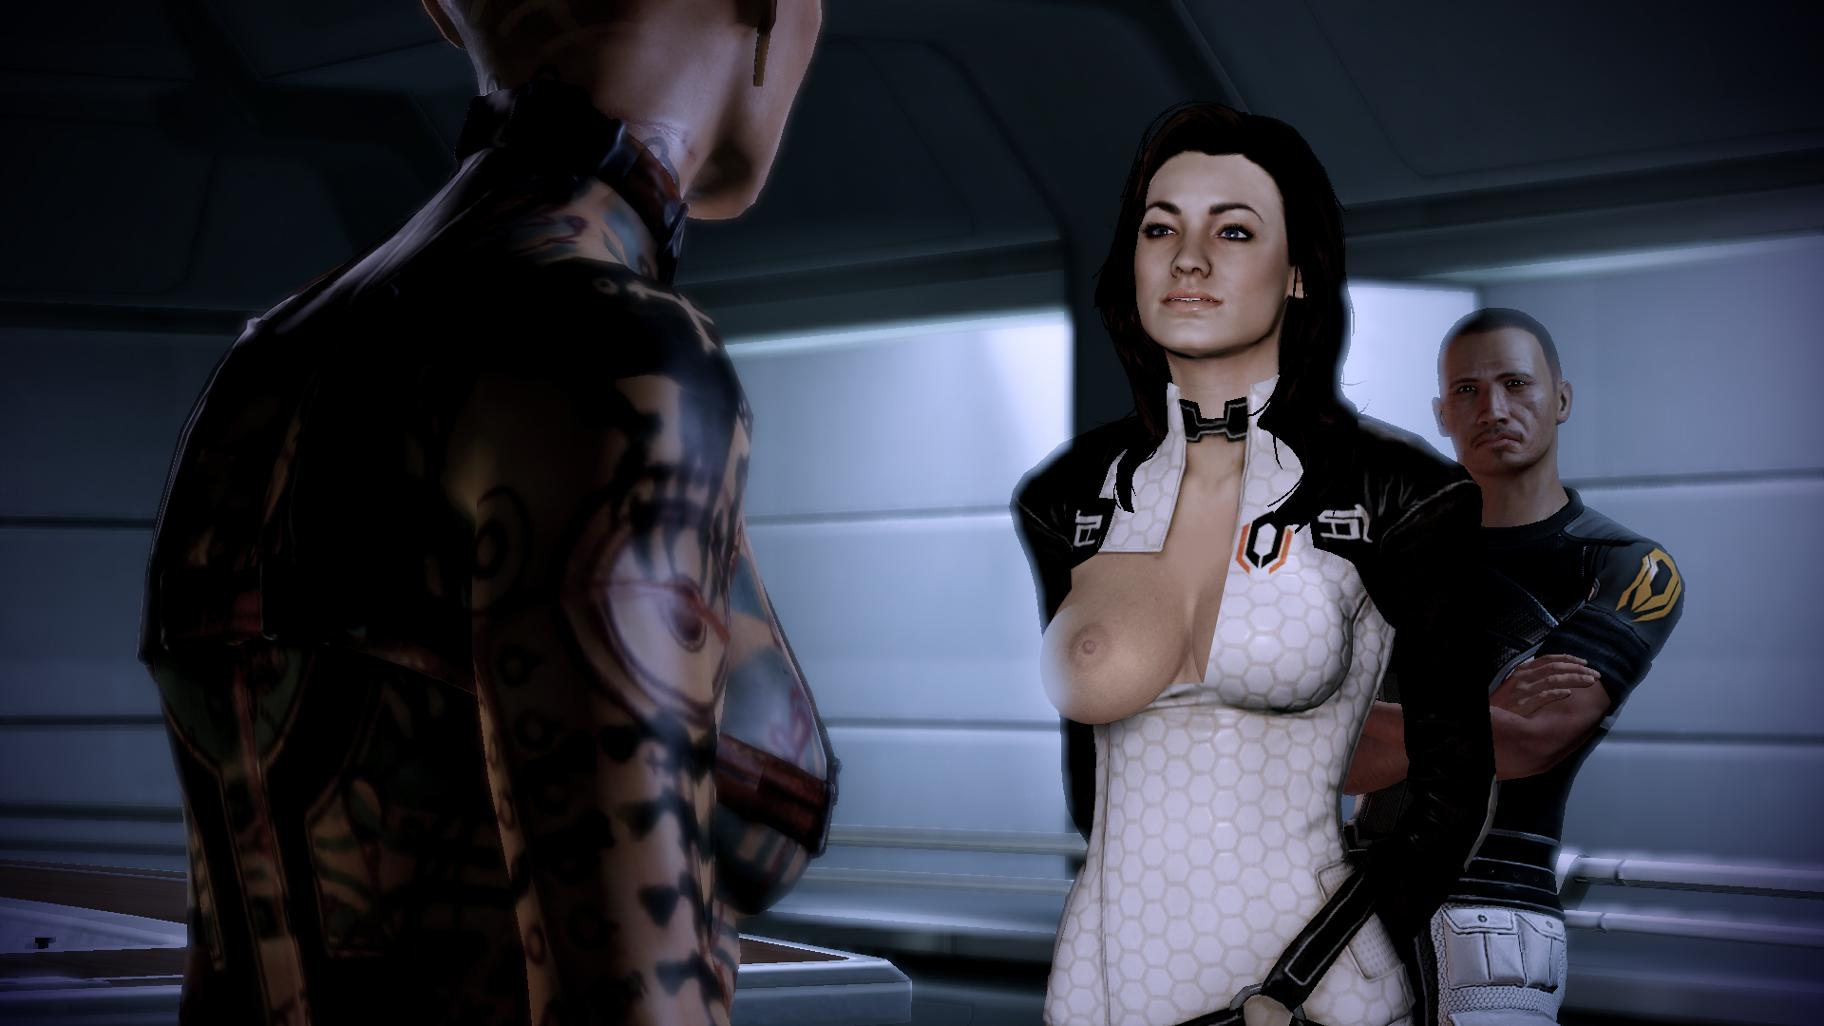 Mass effect henti naked galleries